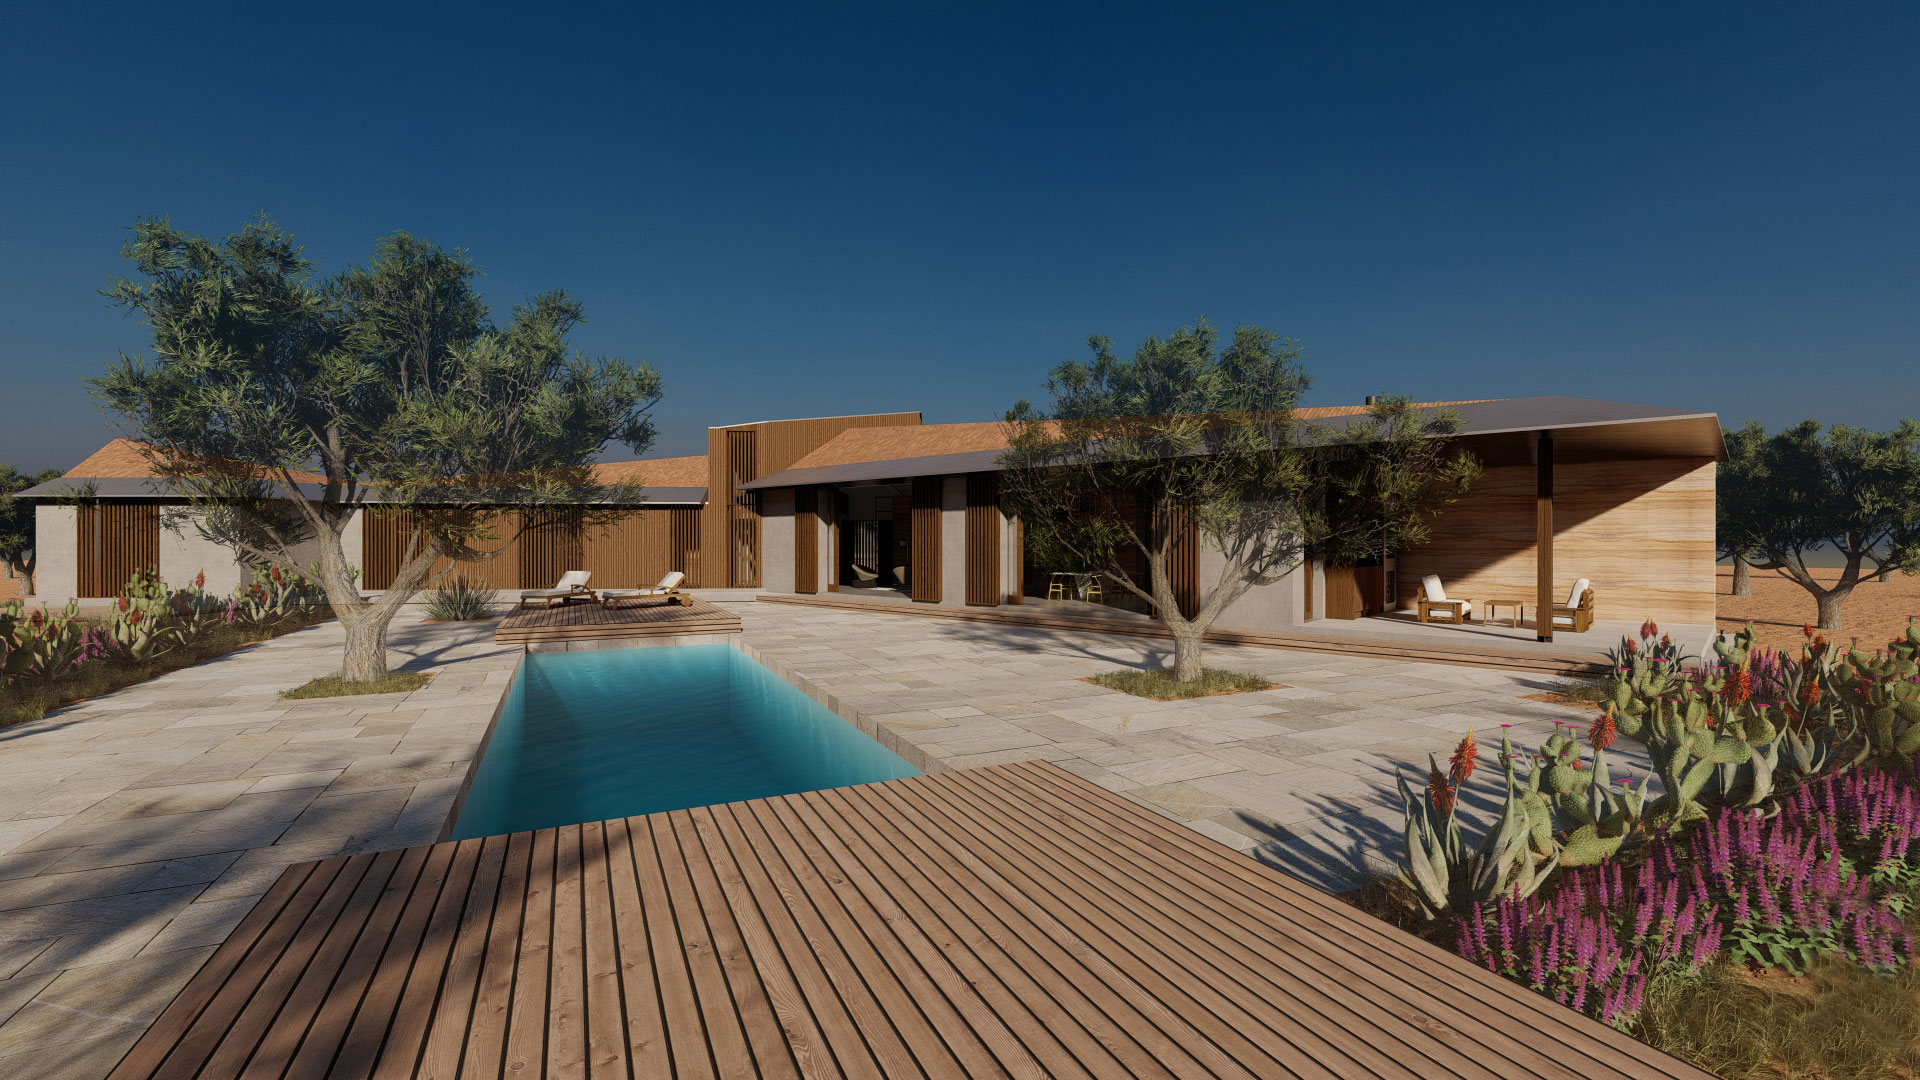 Passive House sustainable new build Spain with rammed earth wall and wood shutters